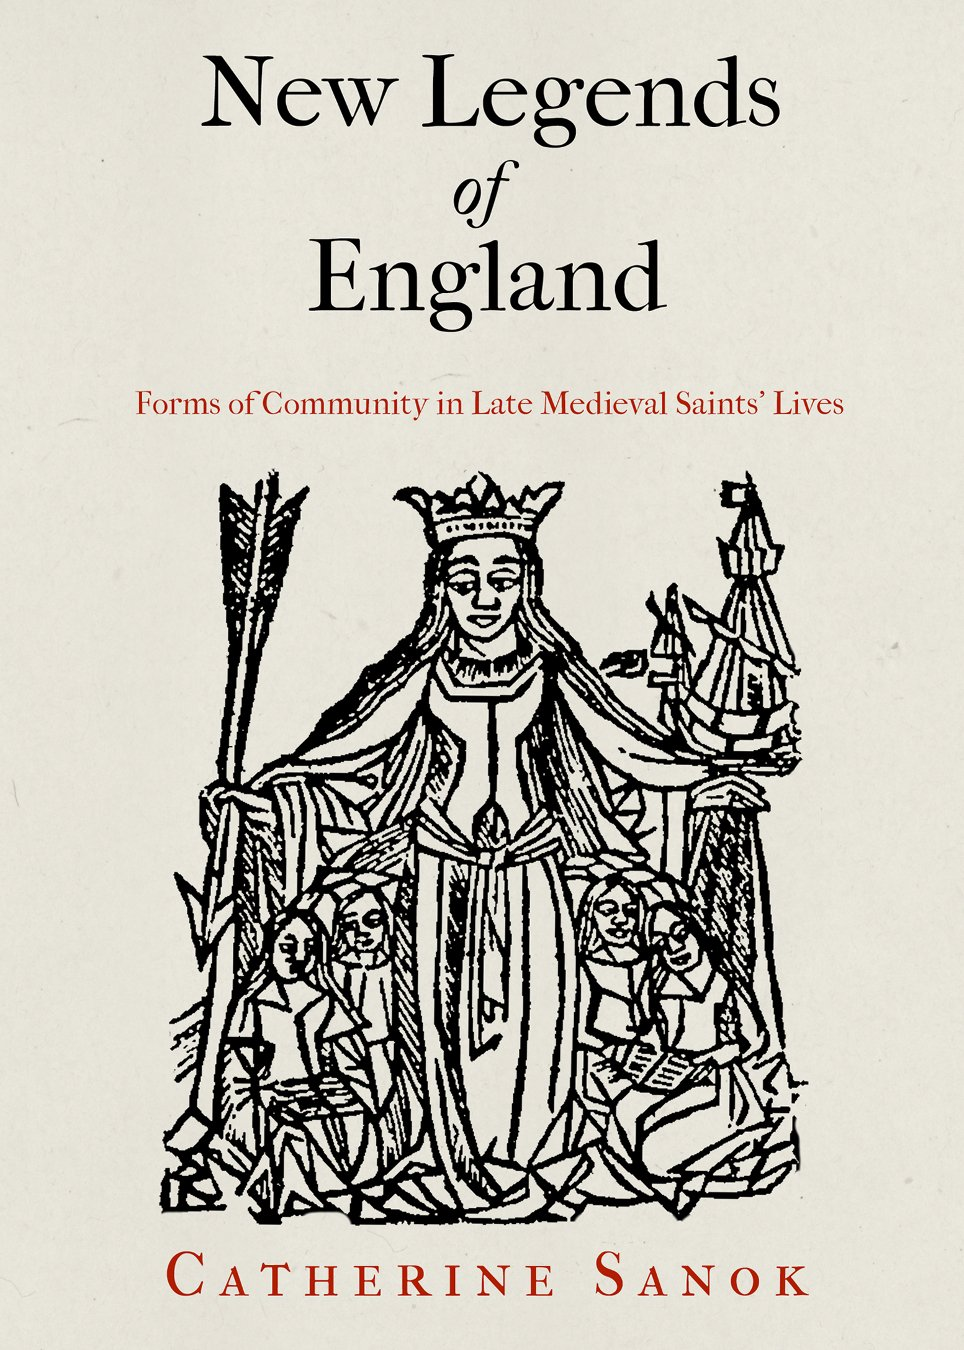 New Legends of England: Forms of Community in Late Medieval Saints' Lives (The Middle Ages Series) pdf